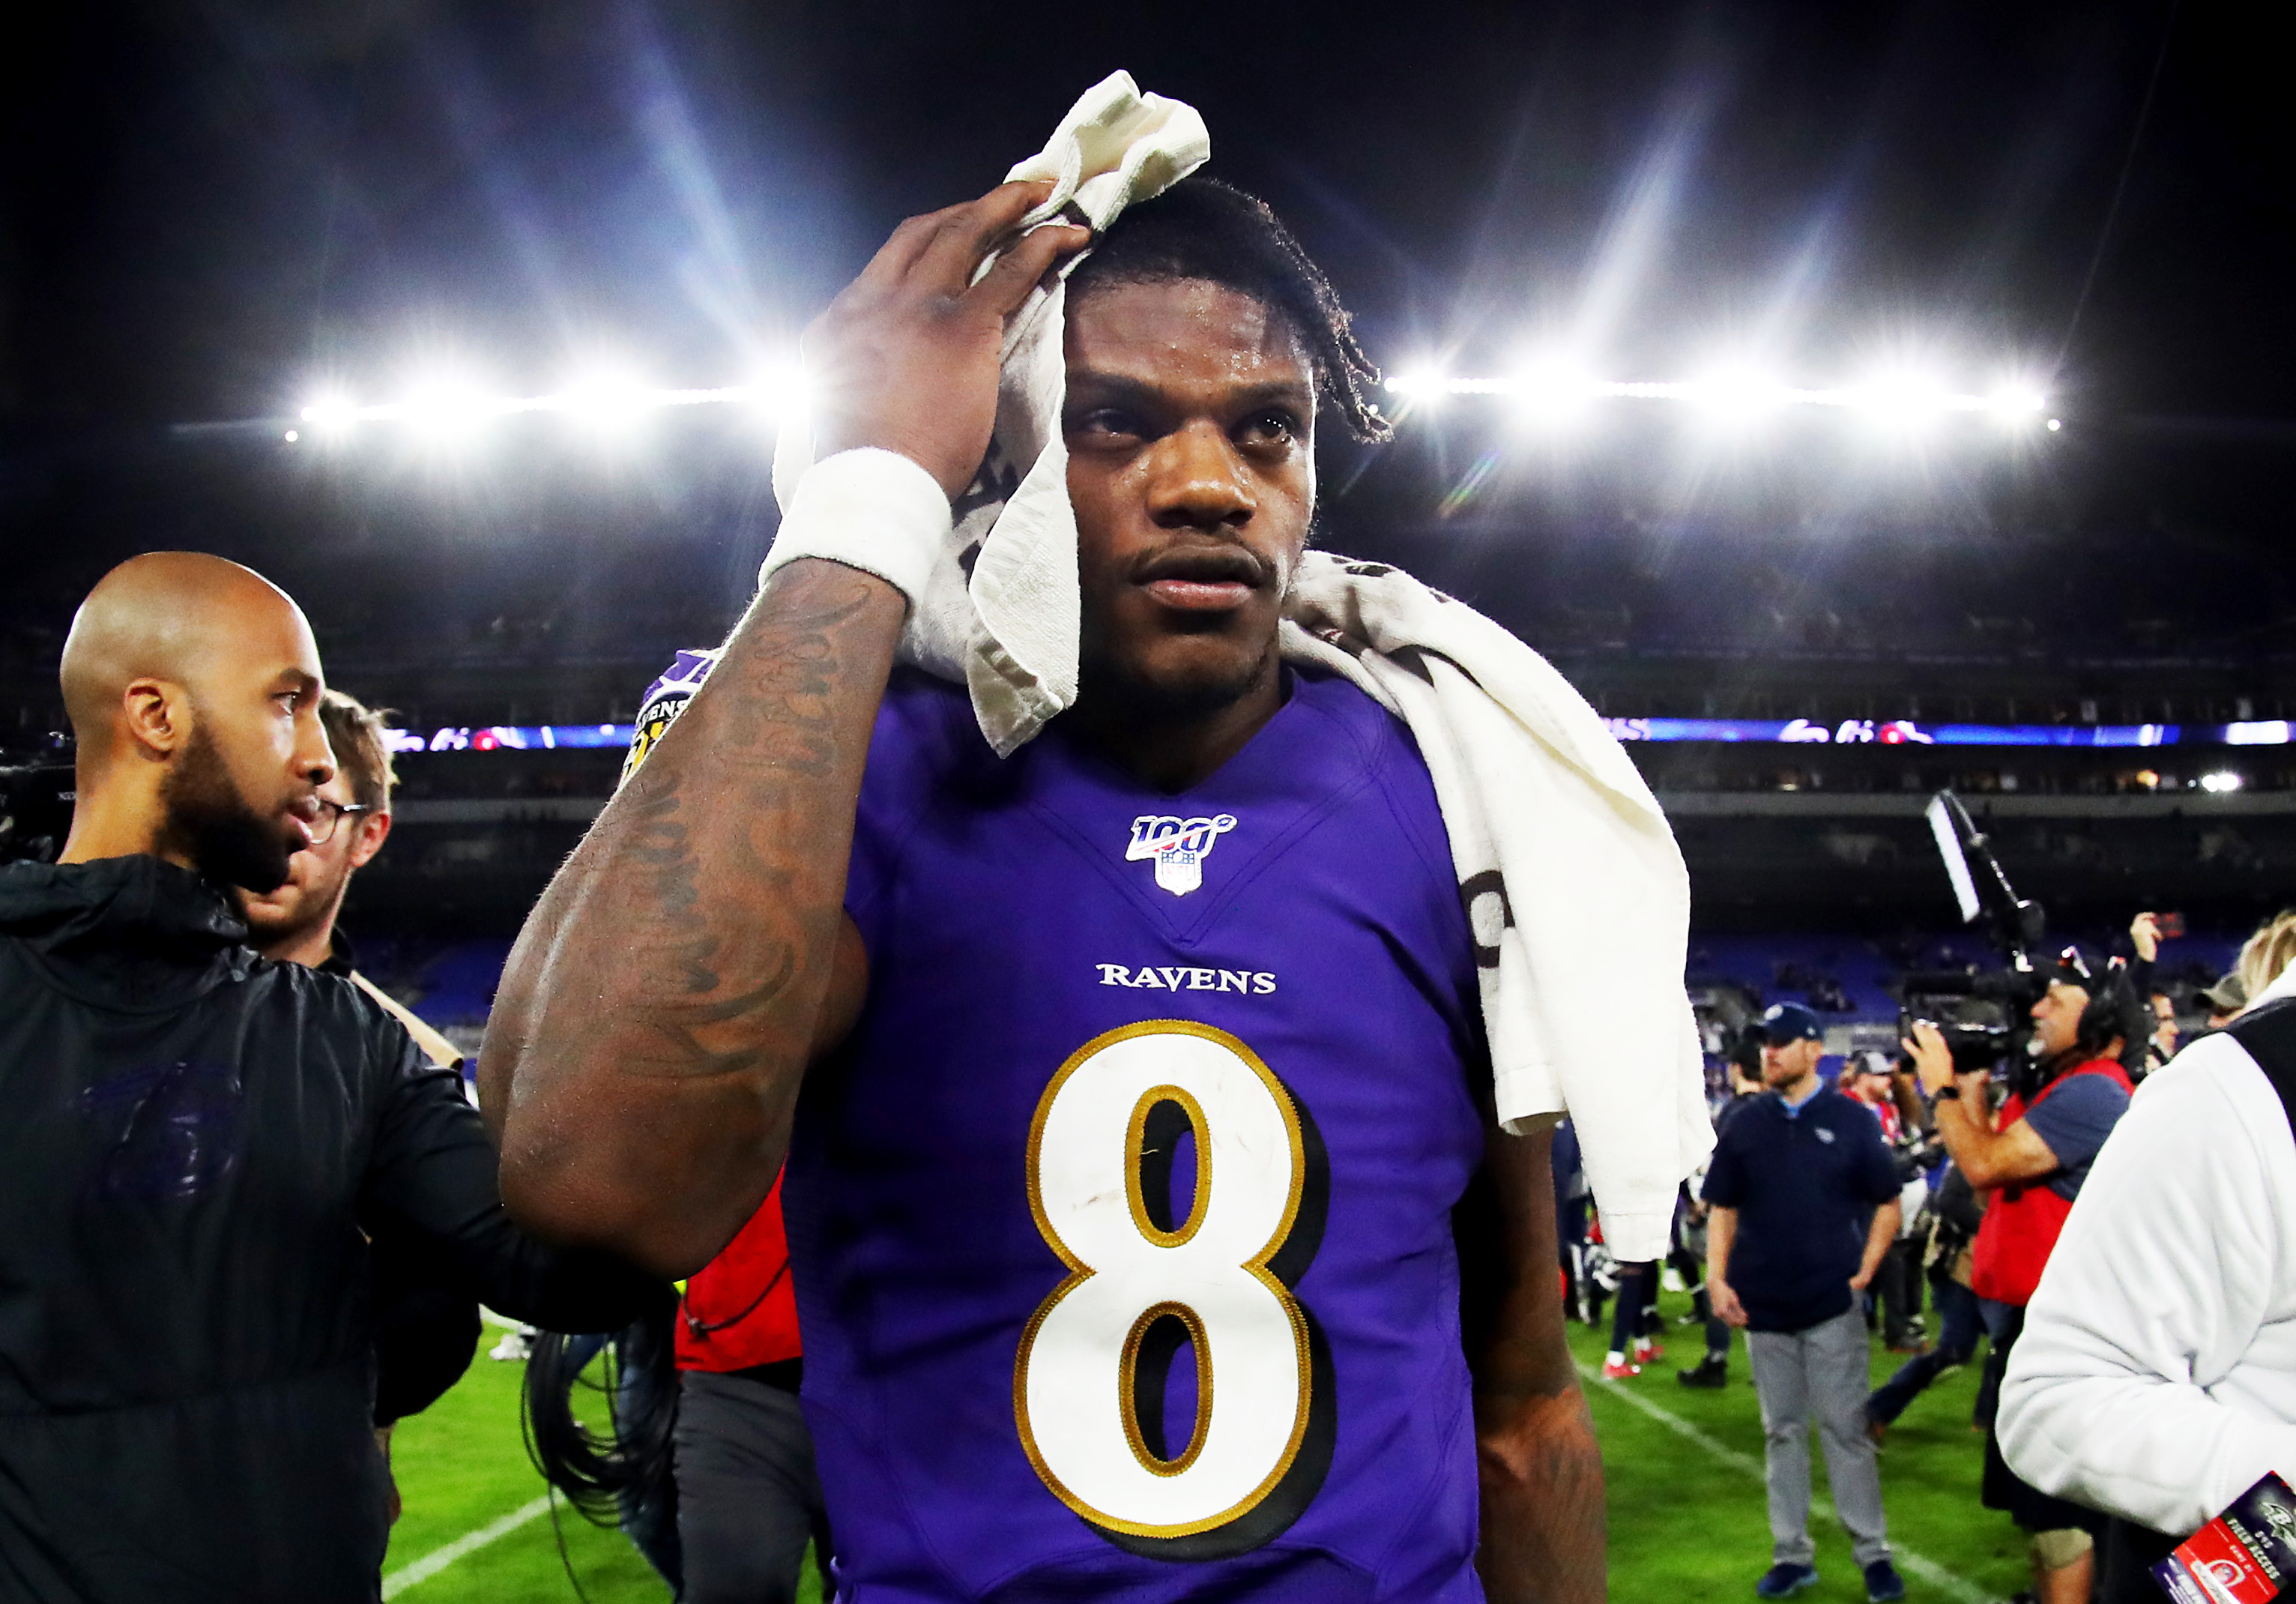 Lamar Jackson walking off the field after a Ravens game